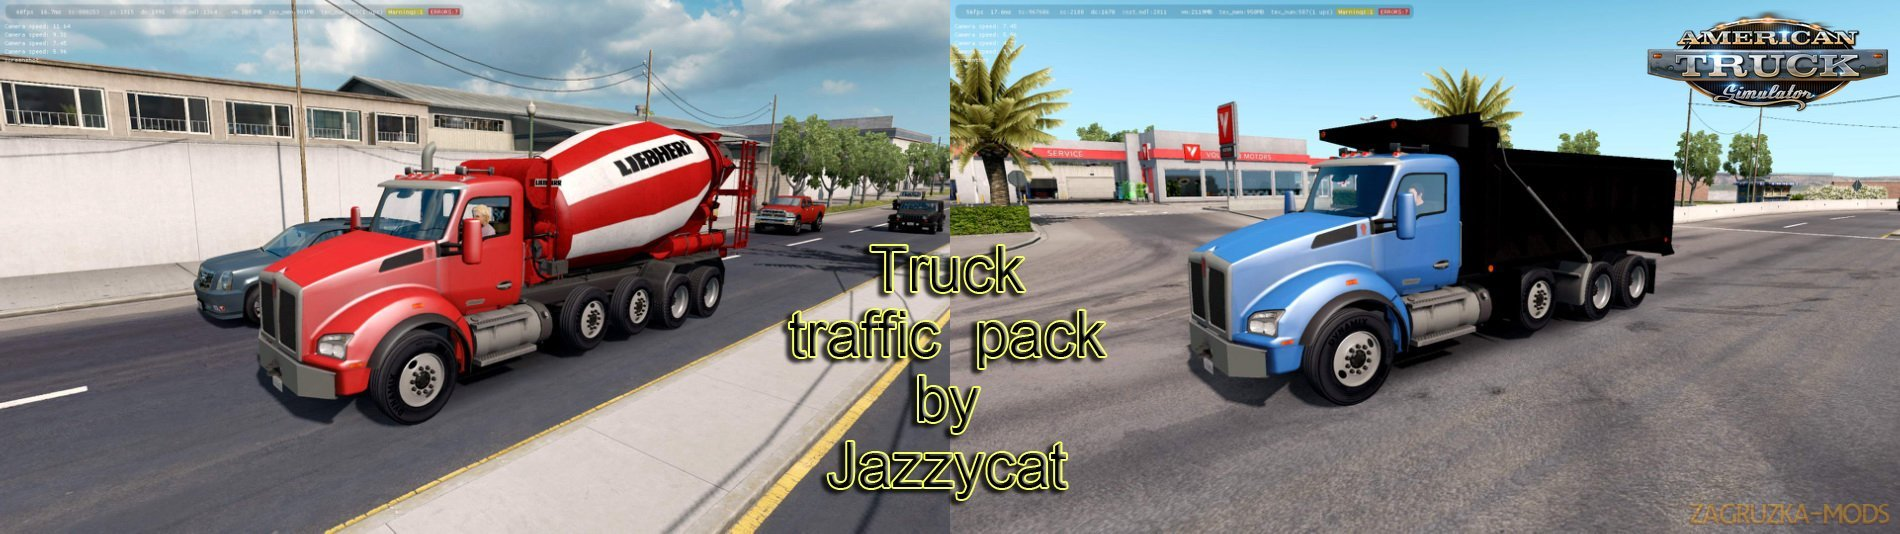 Truck Traffic Pack v1.9 by Jazzycat